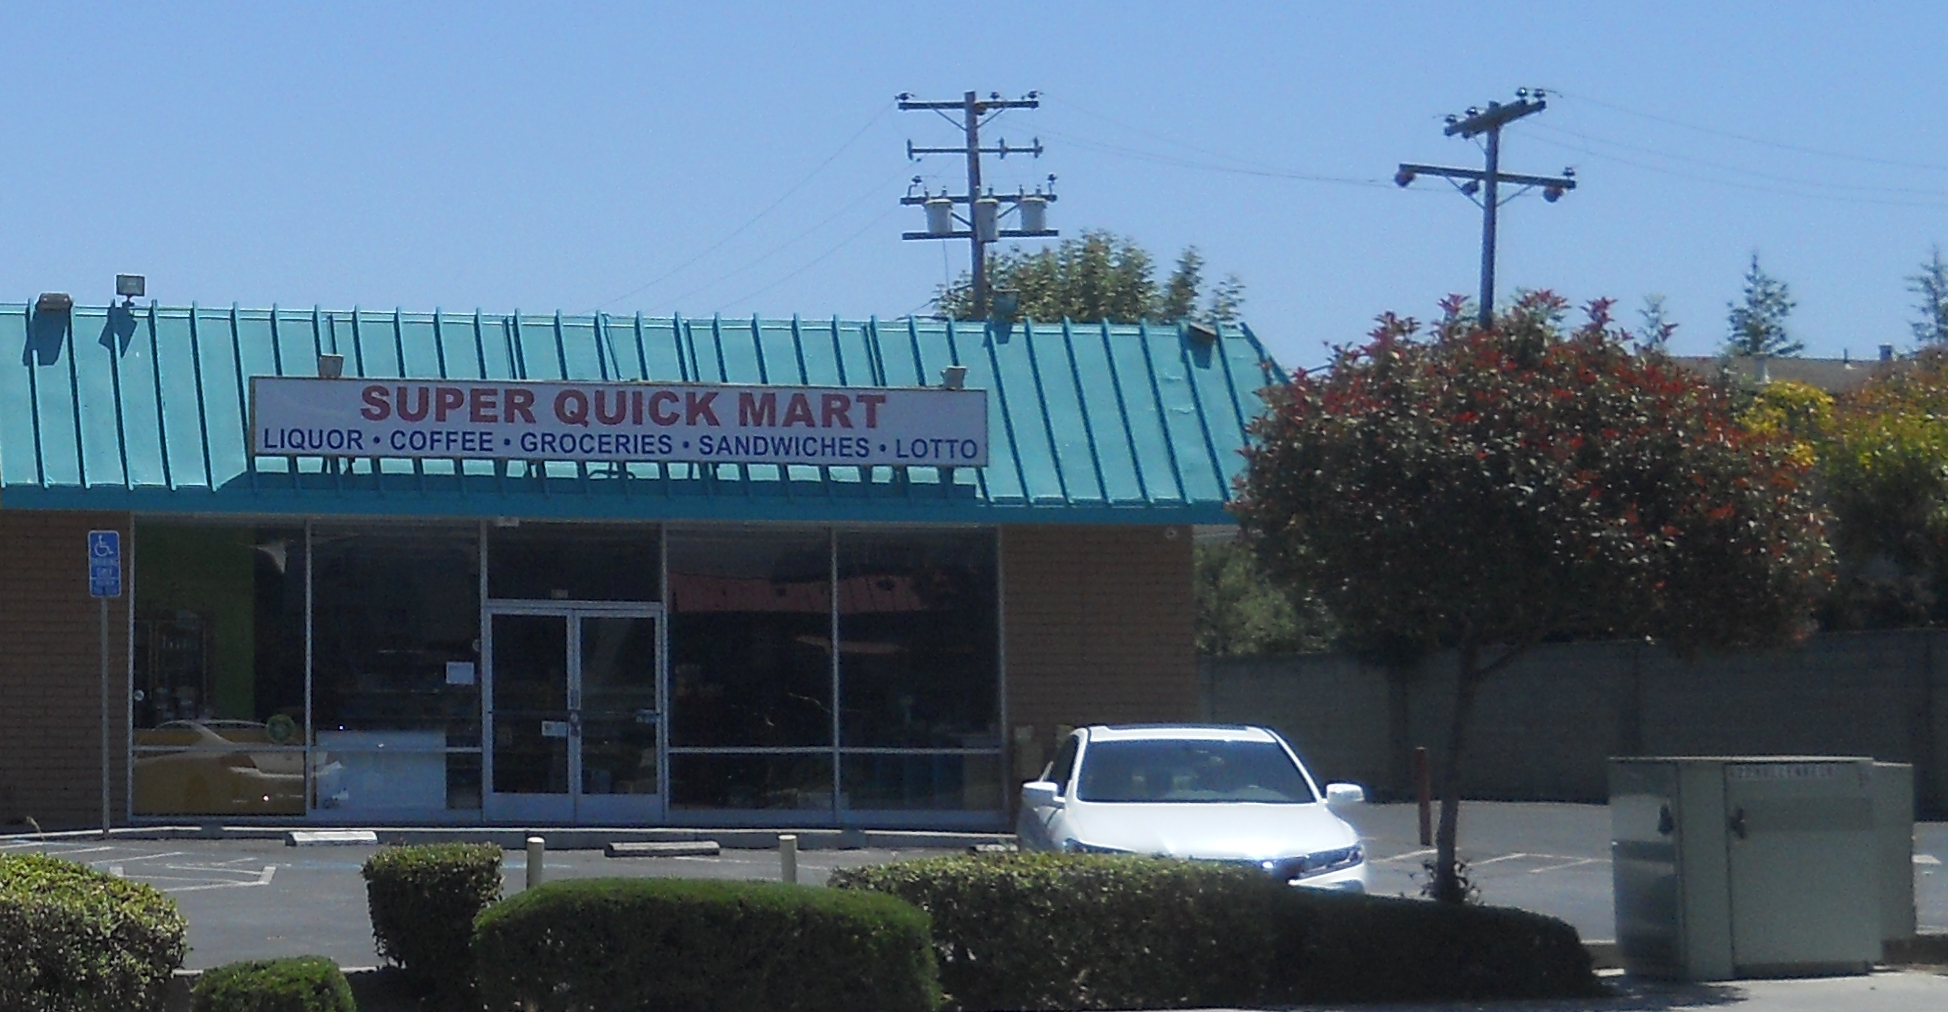 sunnyvale_stripmall.png